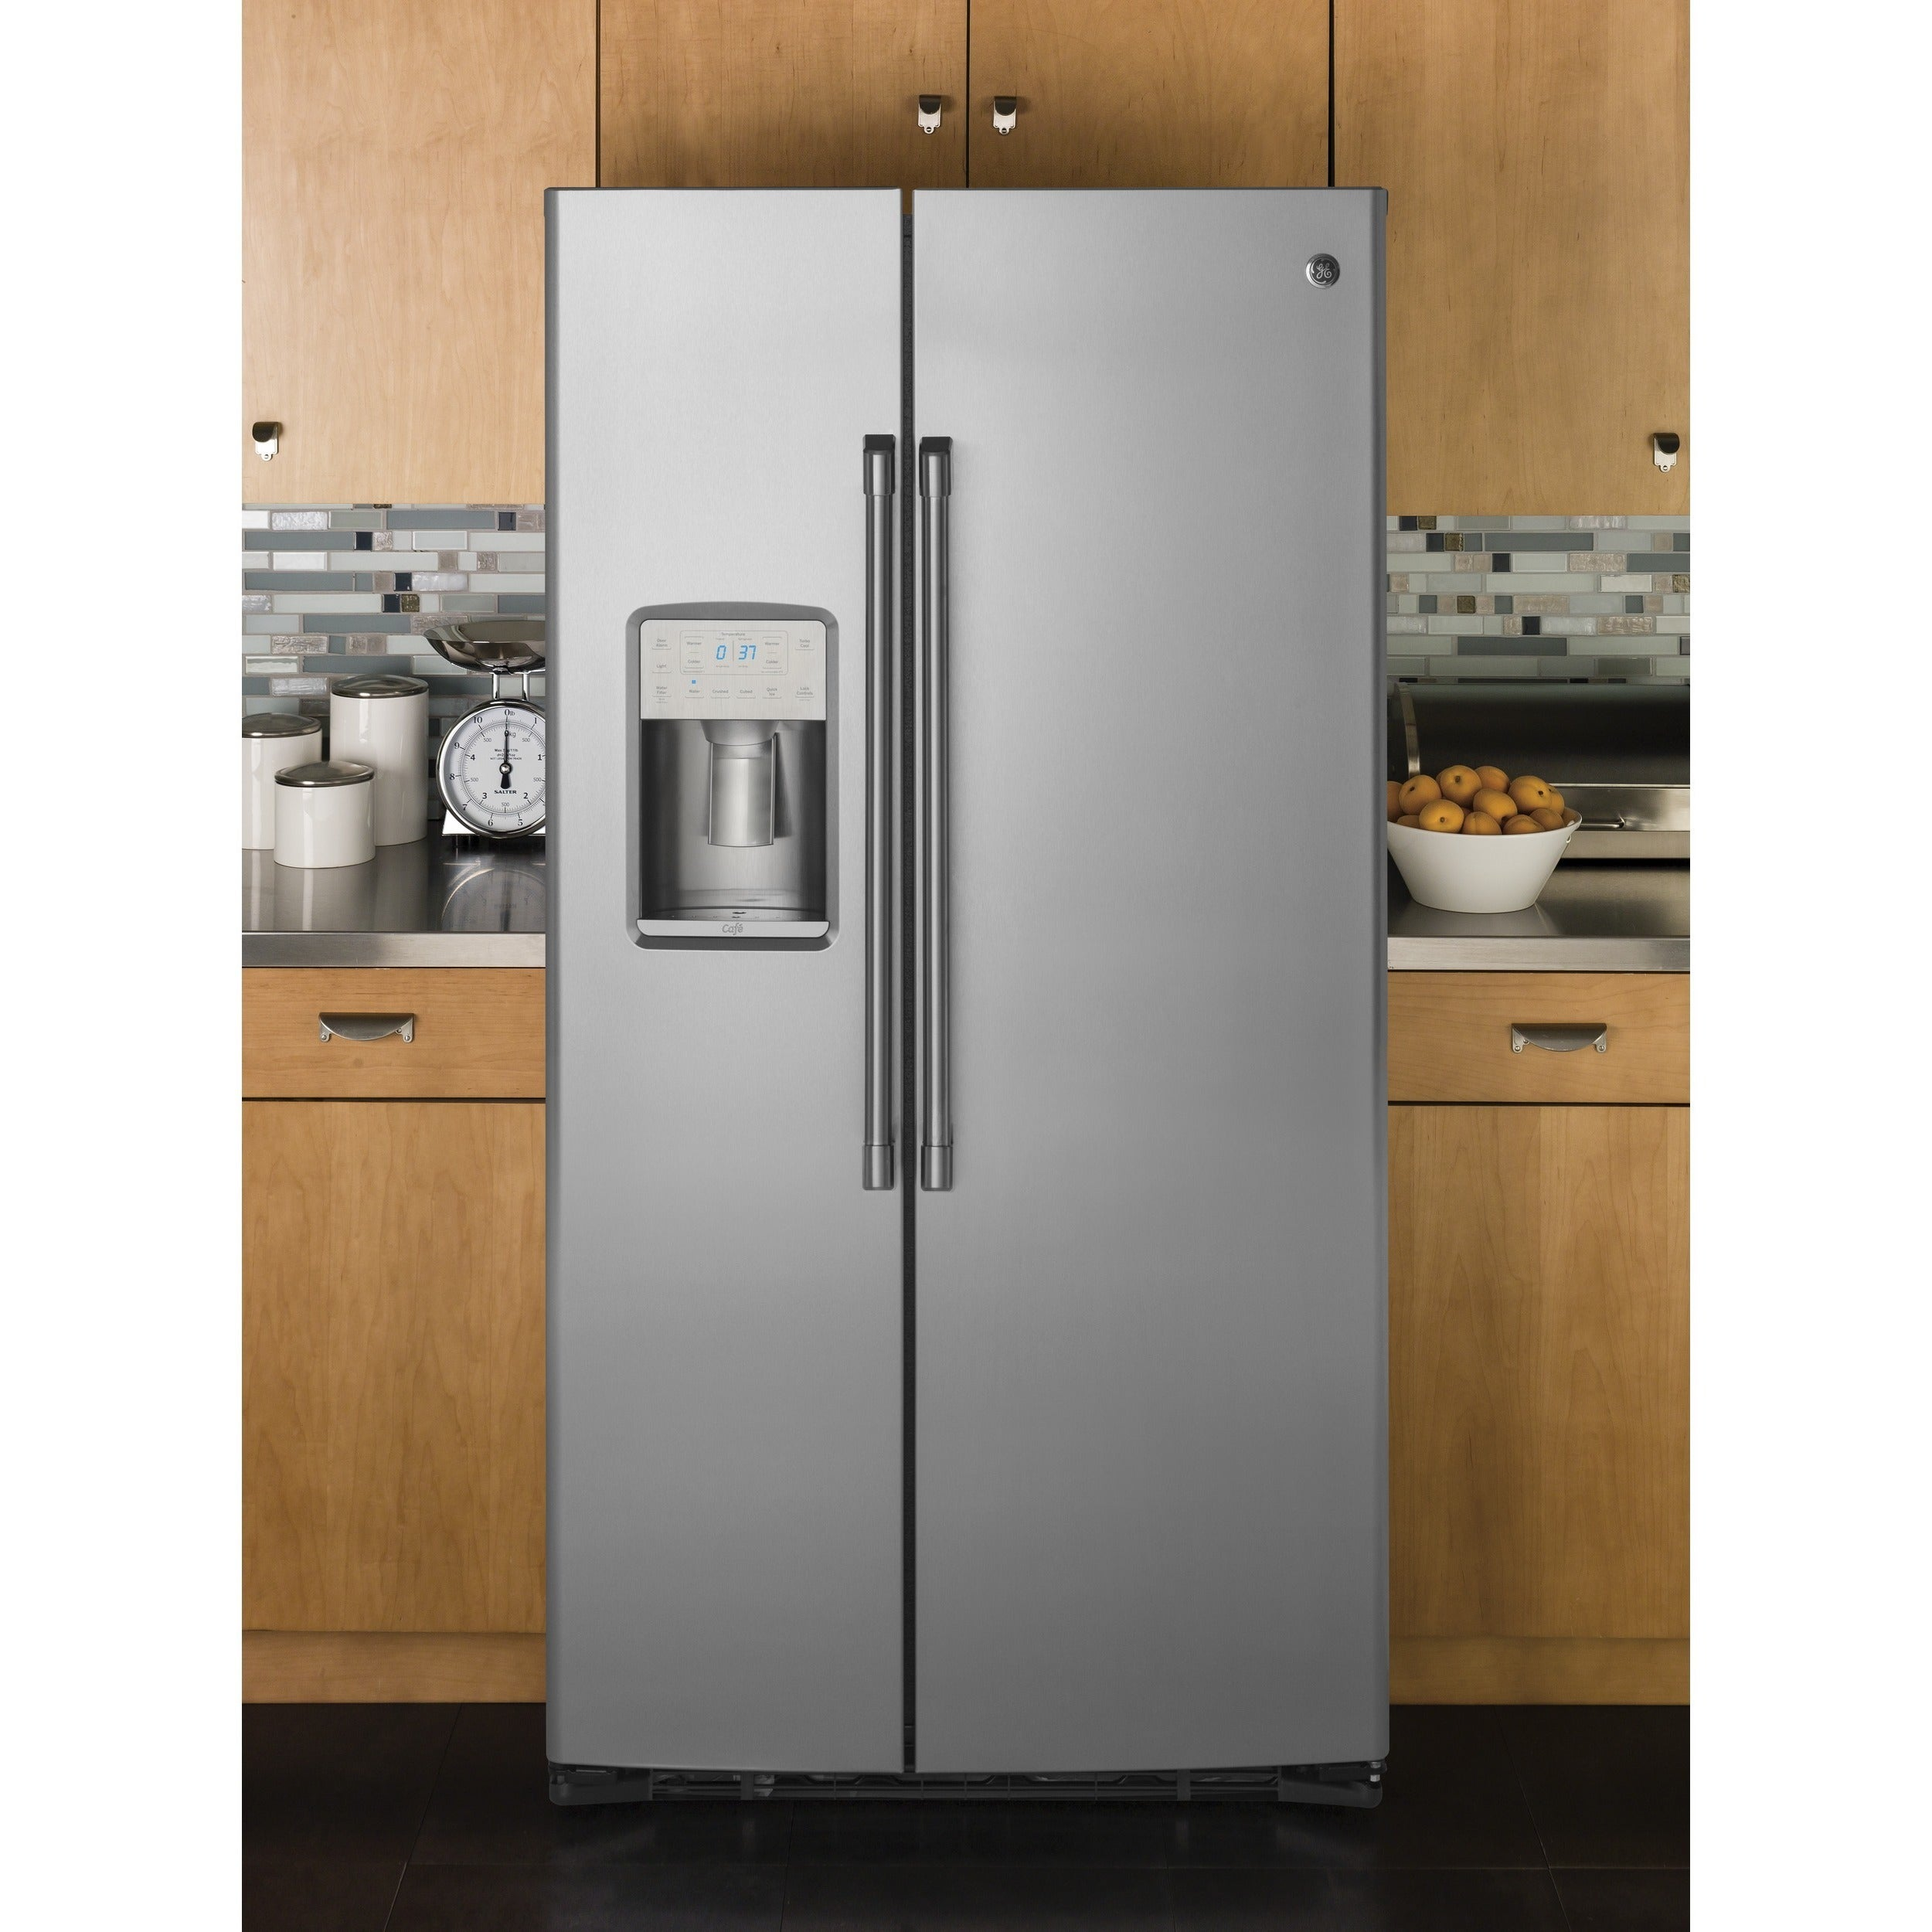 GE Cafe Series 21.9 Cubic Feet Counter-depth Side-by-Side Refrigerator STAINLESS STEEL